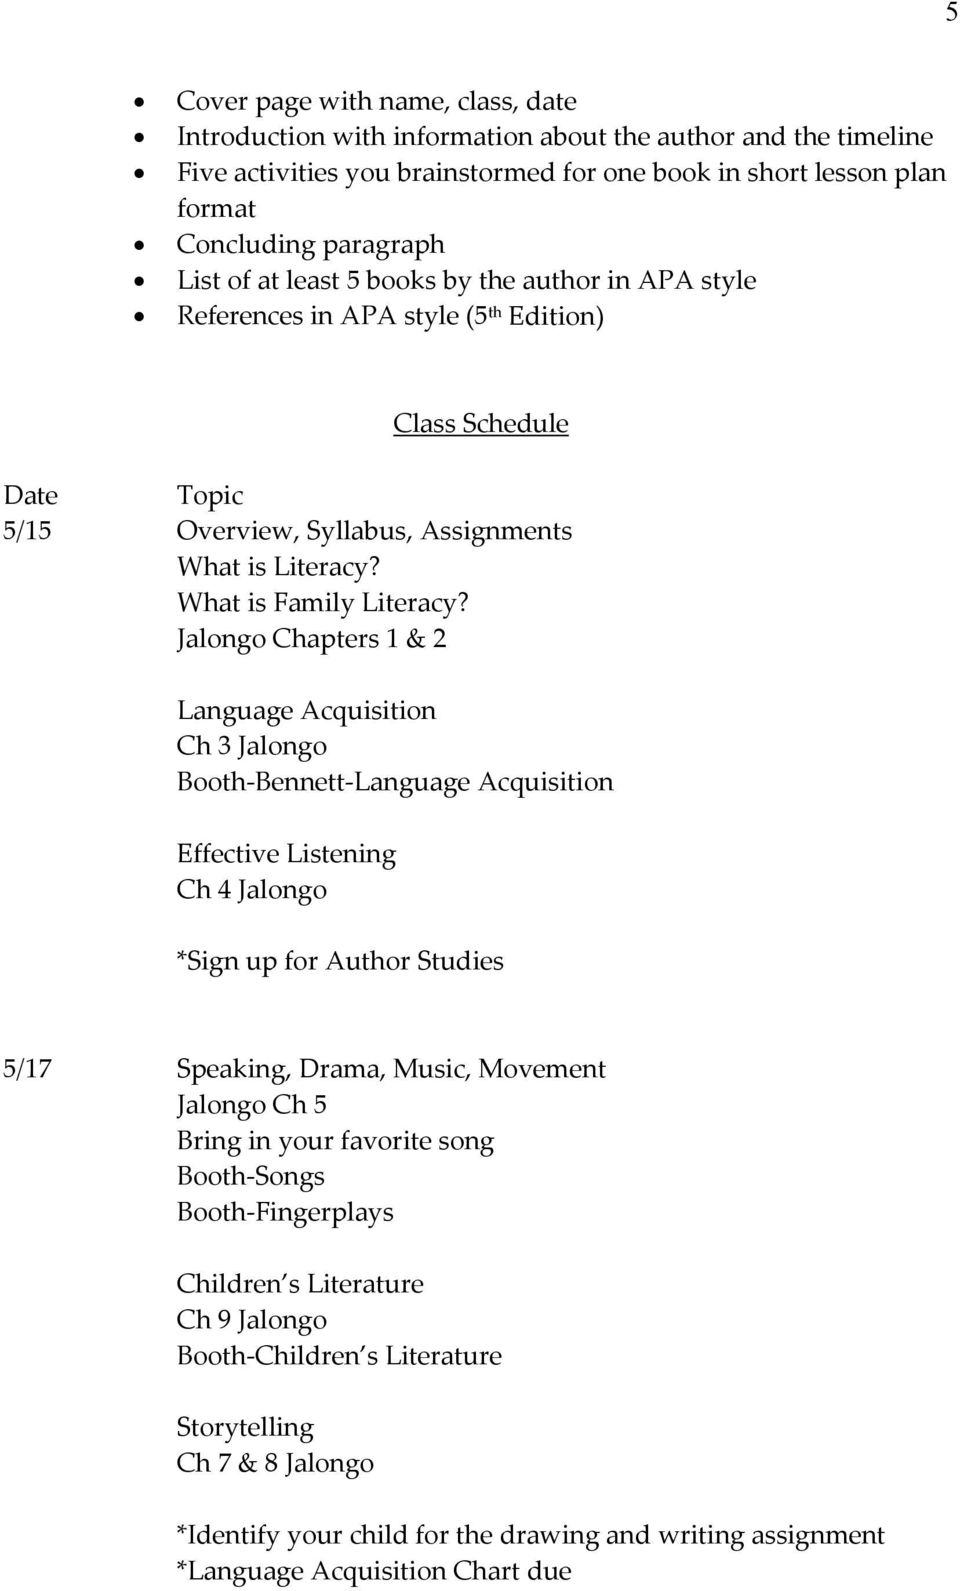 Jalongo Chapters 1 & 2 Language Acquisition Ch 3 Jalongo Booth-Bennett-Language Acquisition Effective Listening Ch 4 Jalongo *Sign up for Author Studies 5/17 Speaking, Drama, Music, Movement Jalongo